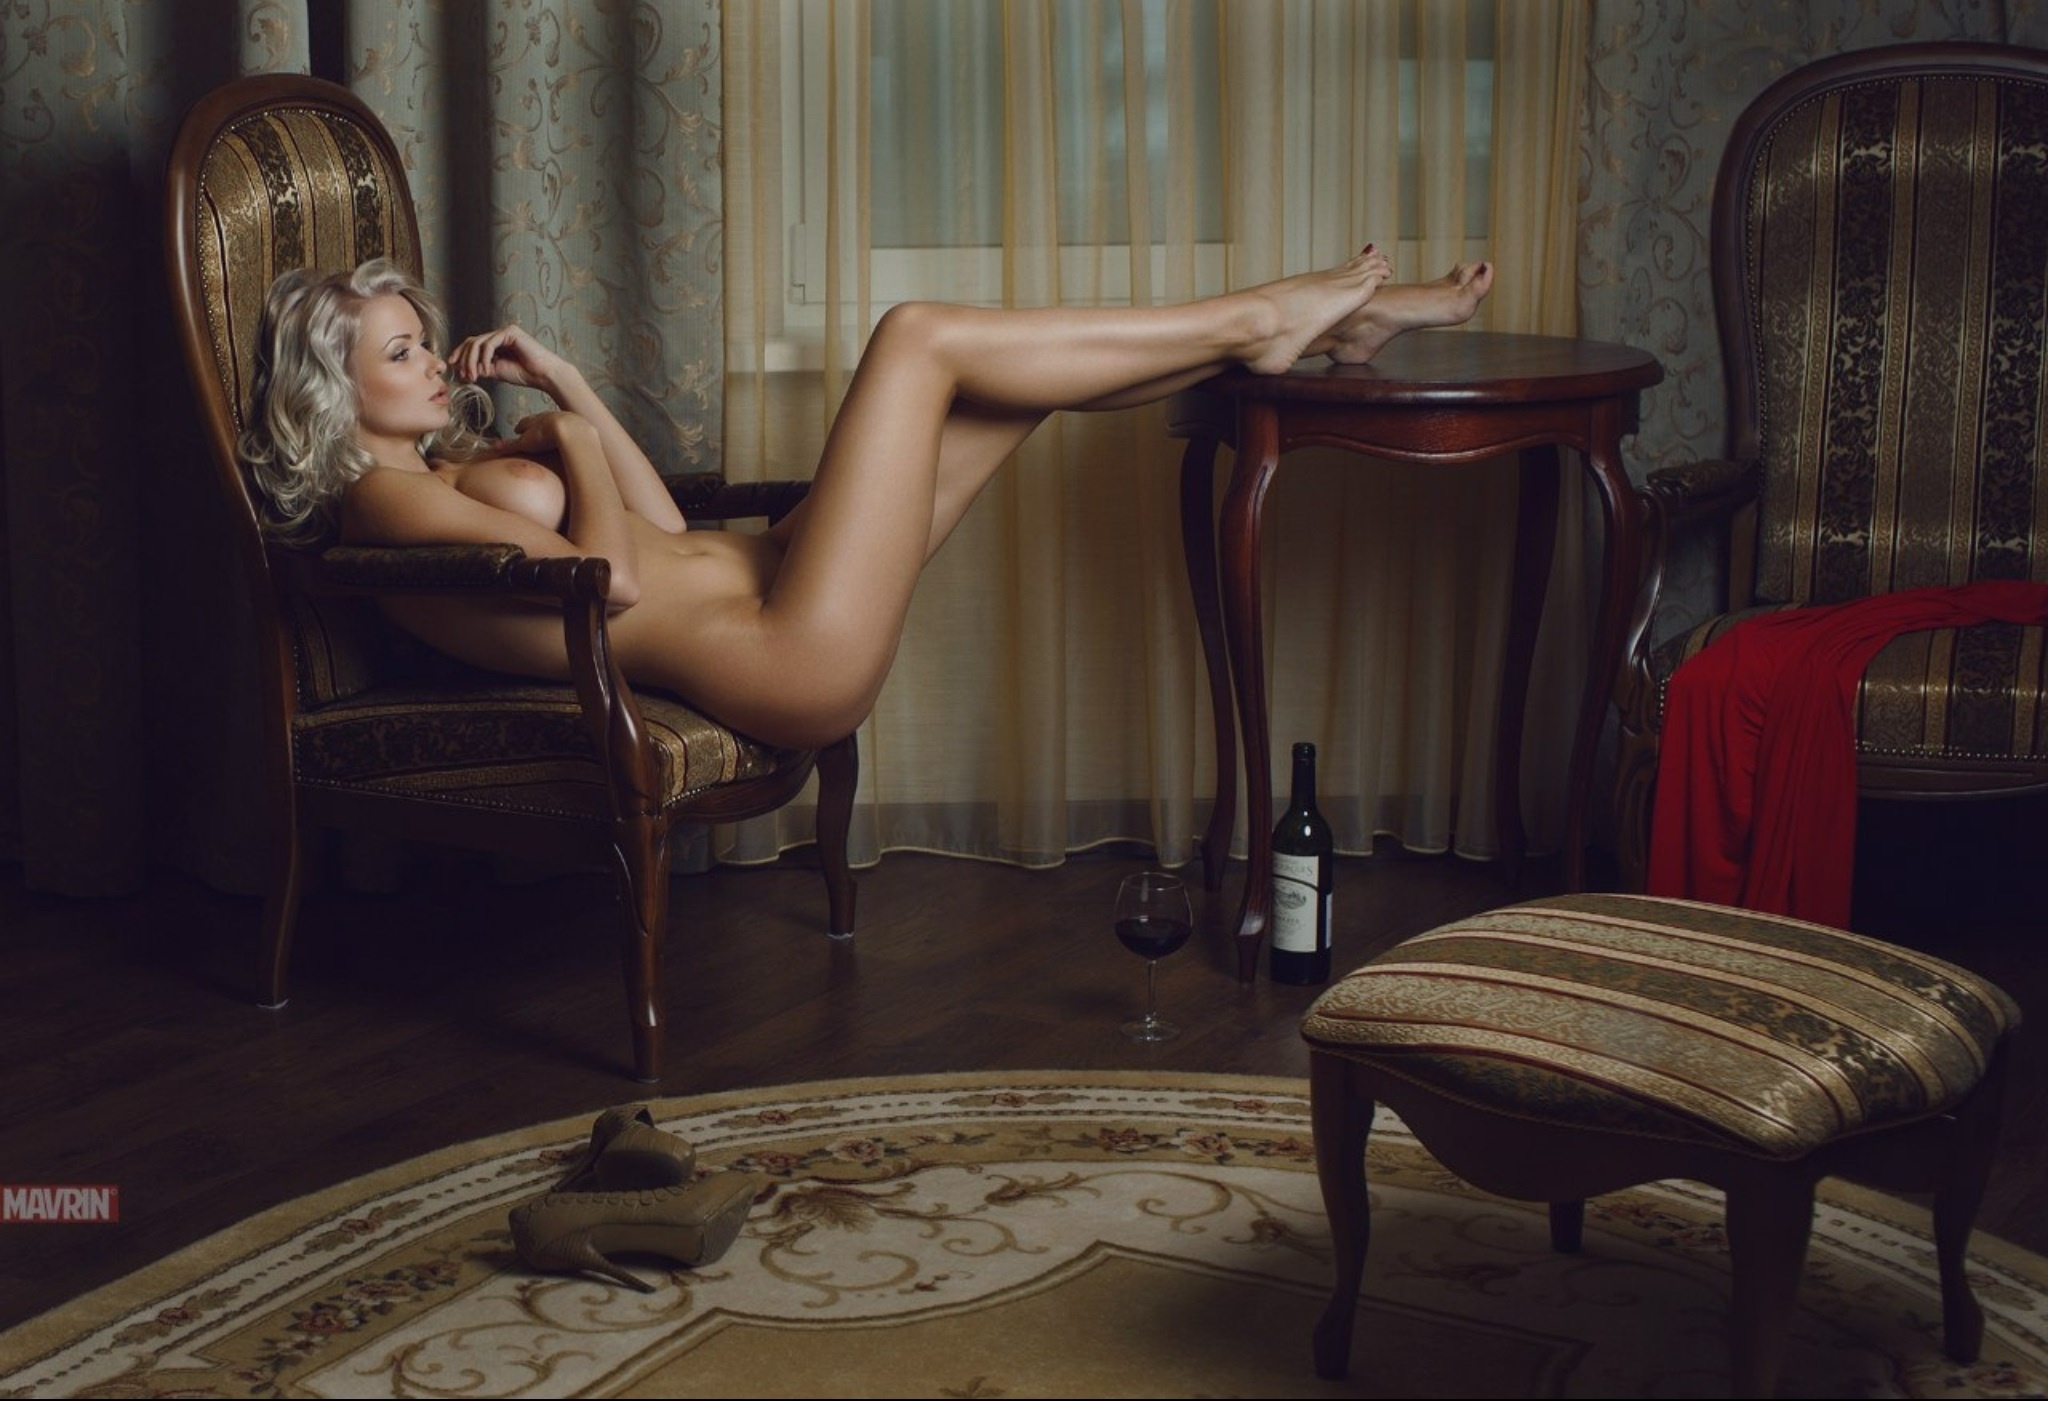 playmate-naked-on-chair-girl